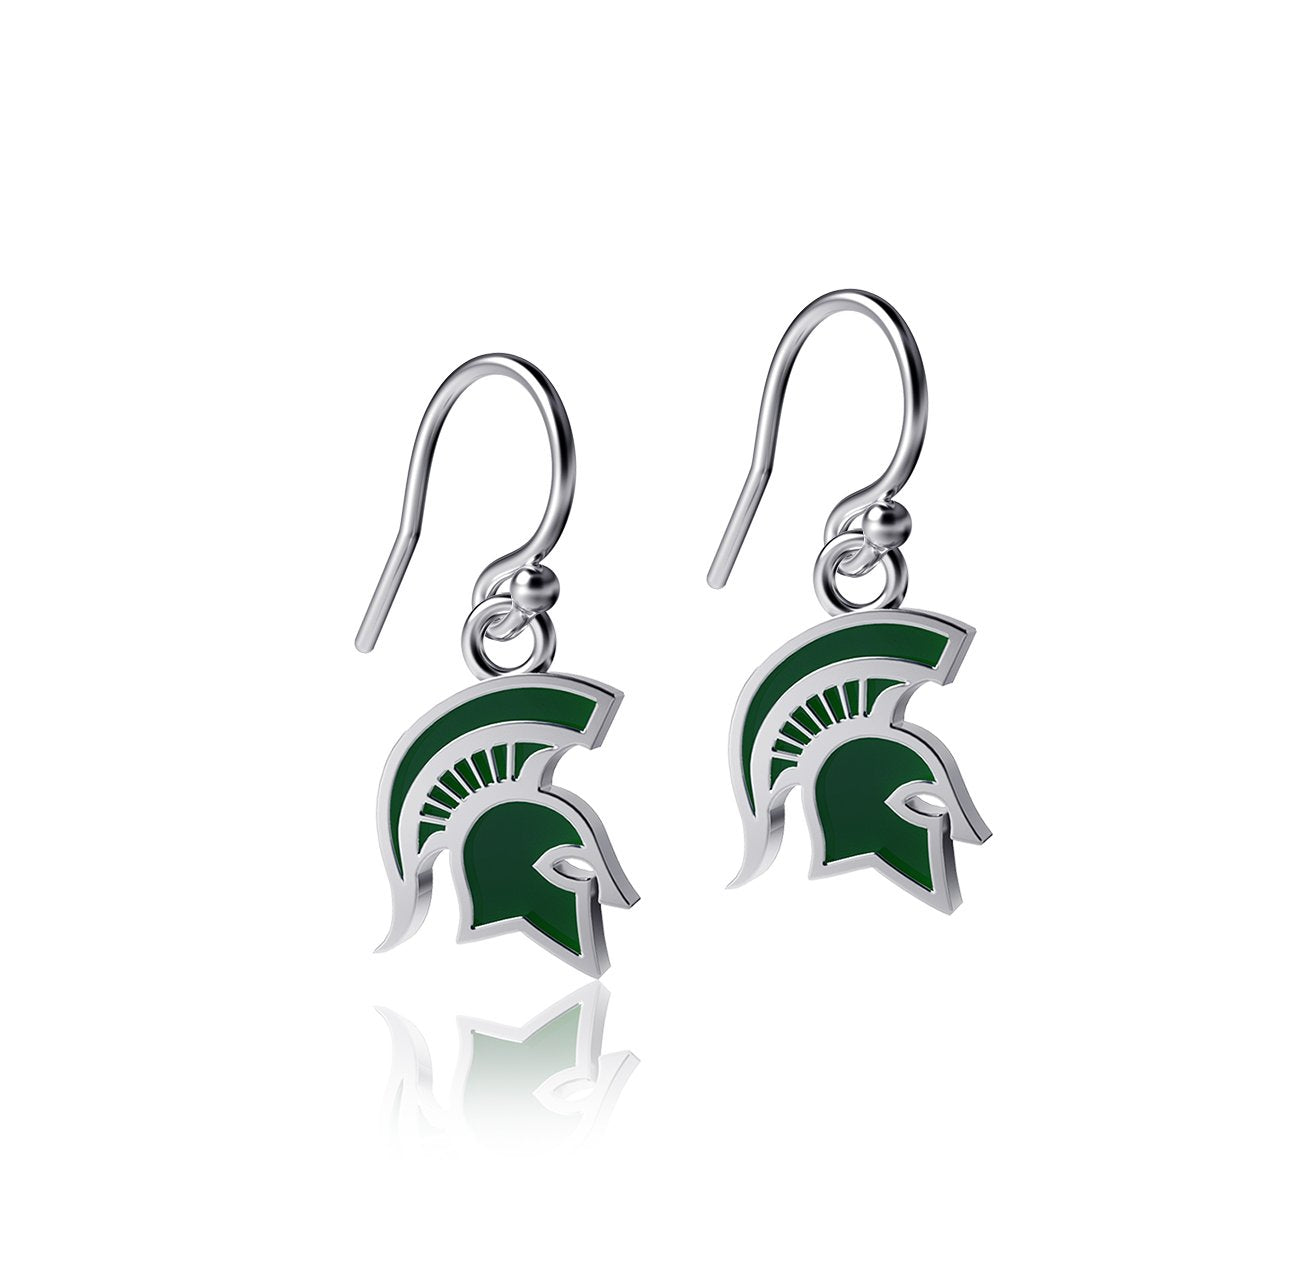 Michigan State University Dangle Earrings - Enamel